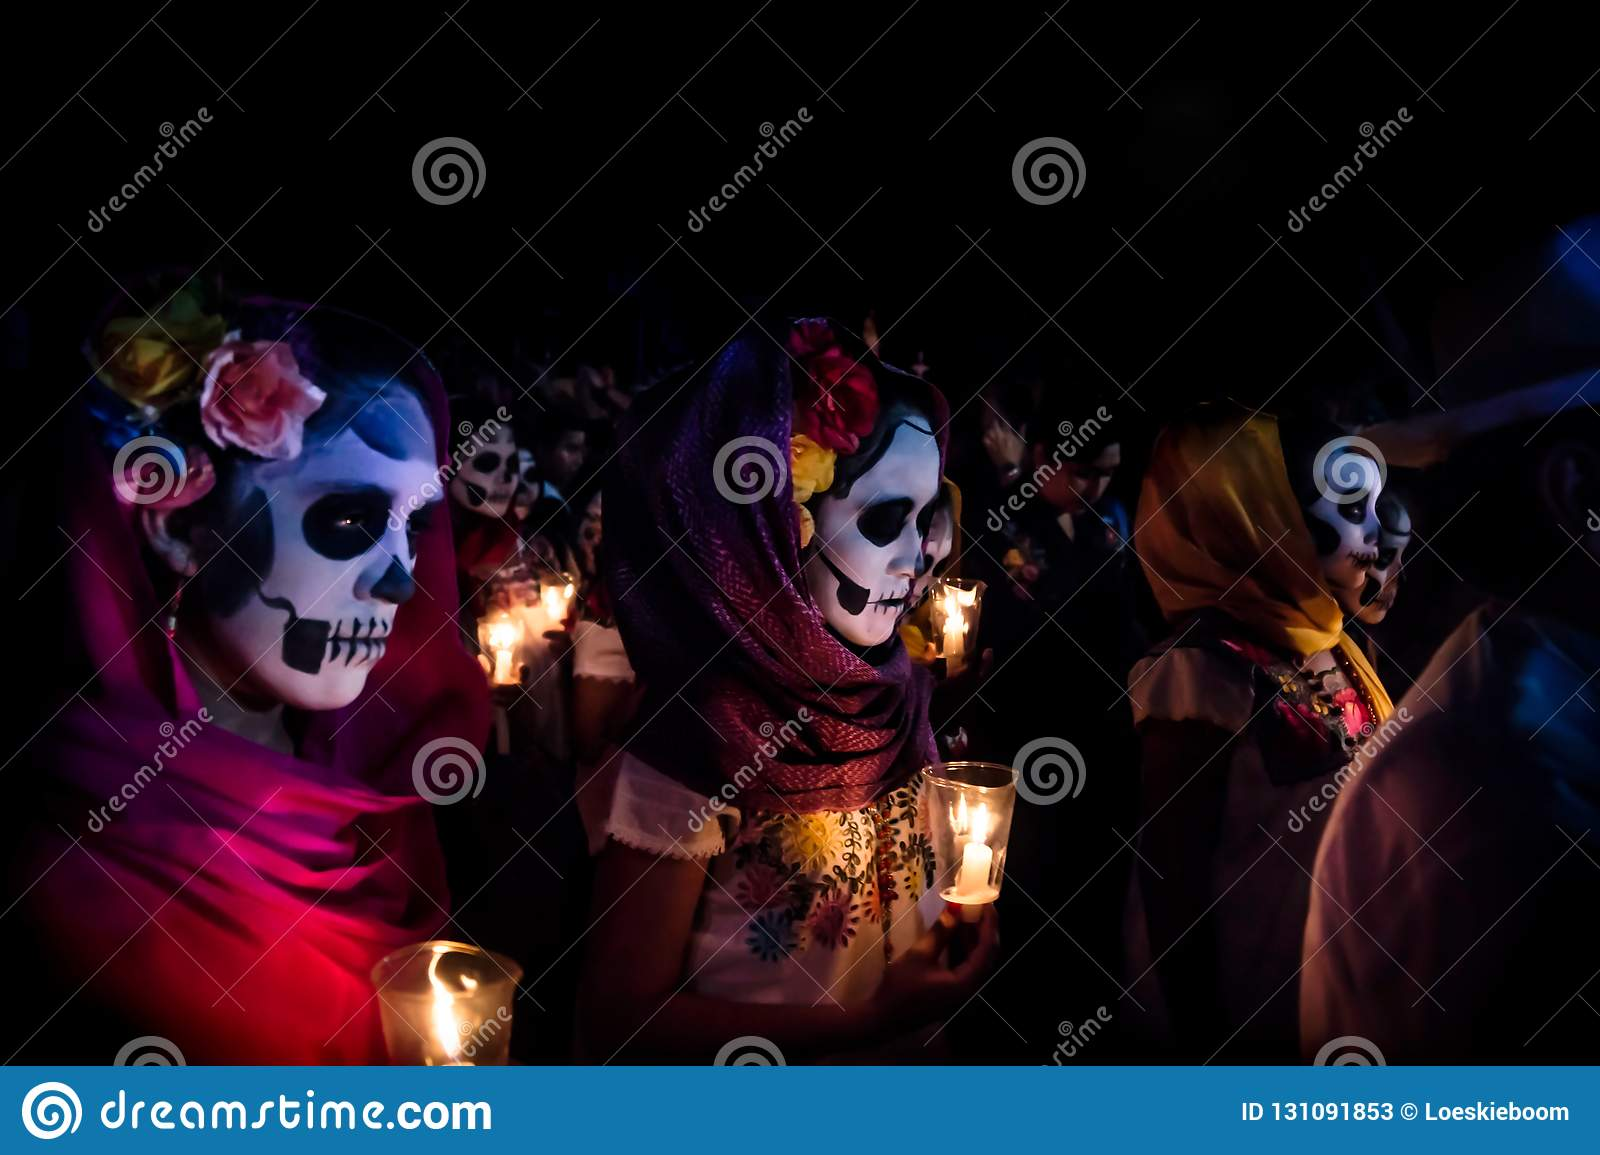 Three women with Catrina customes, scarves on their head and flowers in the hair with skull make-up holding candels surrounded by